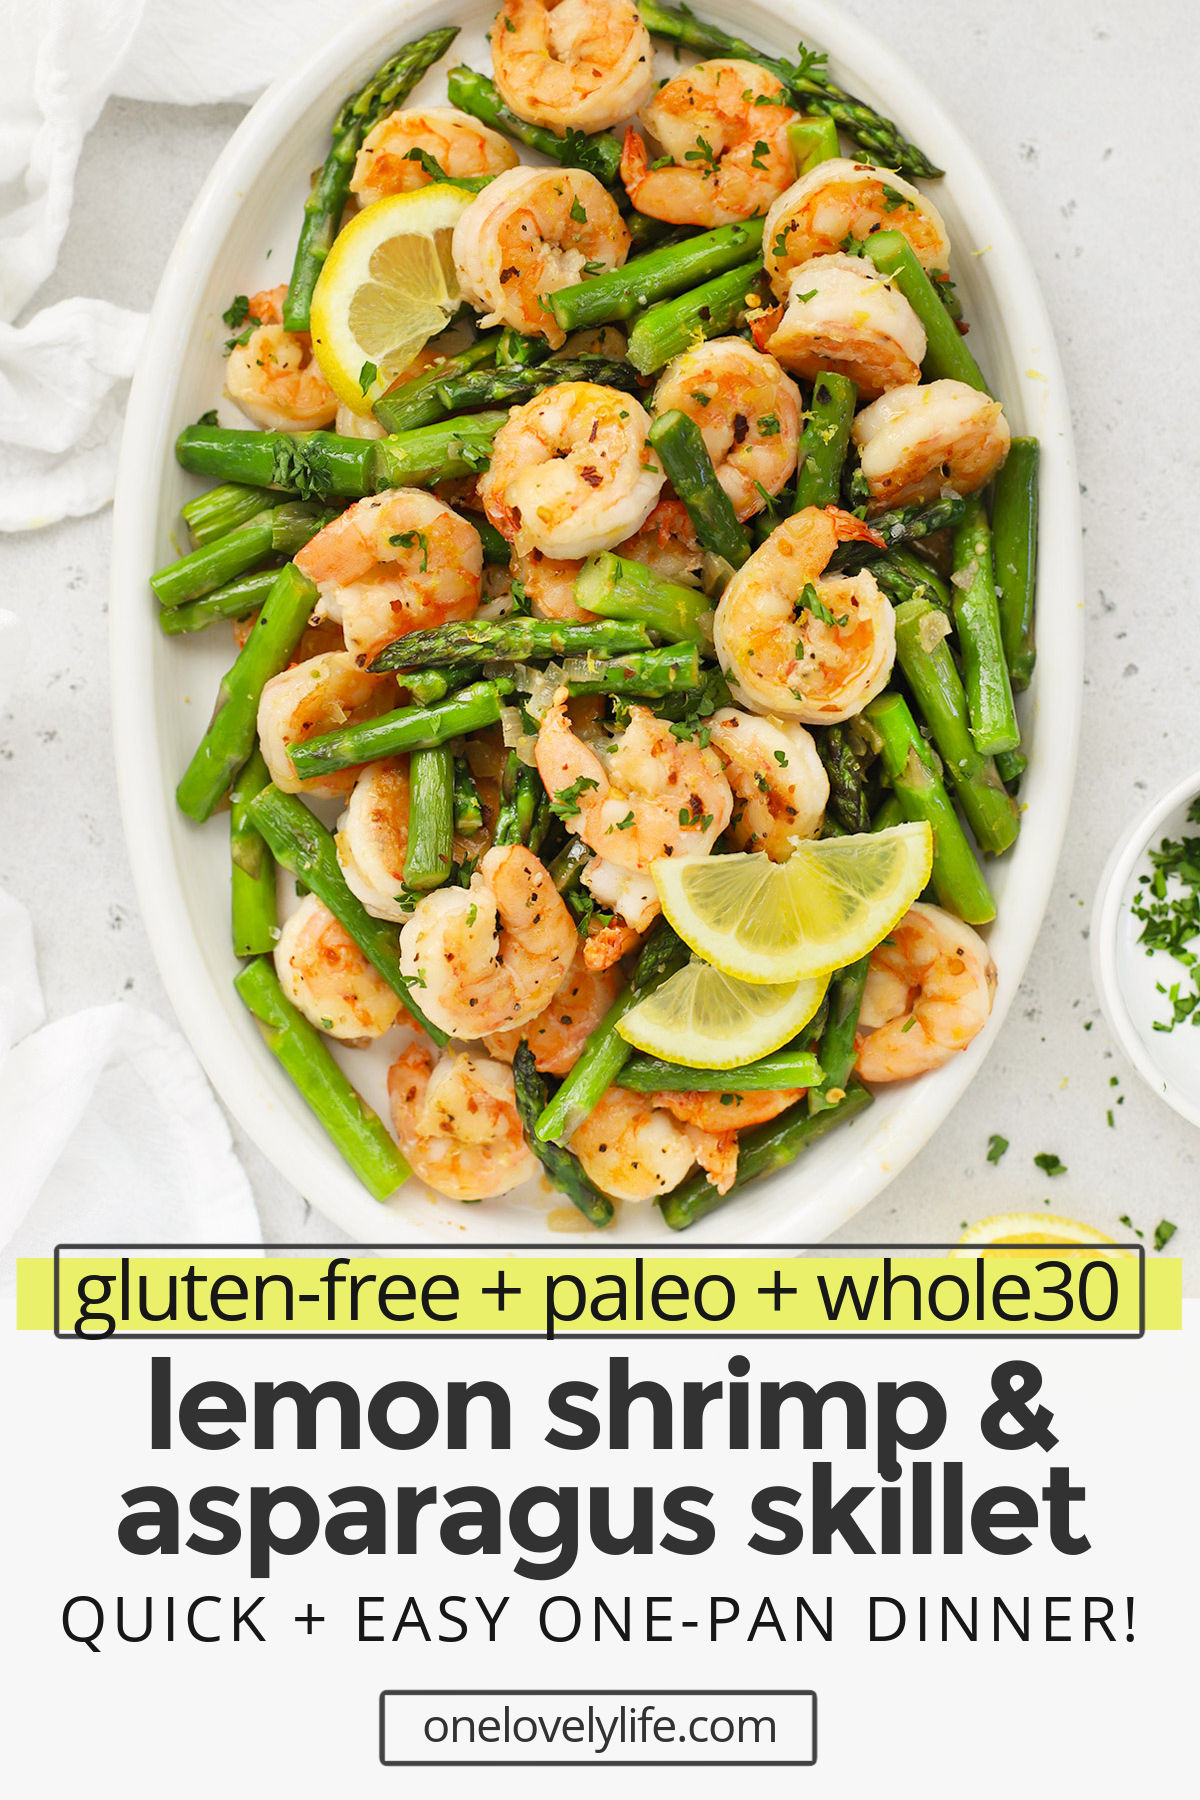 Lemon Shrimp & Asparagus Skillet - This one pan lemon shrimp with asparagus comes together quickly and packs in SO much gorgeous flavor. It's a weeknight wonder! (Gluten-Free, Paleo & Whole30-Friendly) // Shrimp recipe // Low carb dinner // one pan dinner // healthy dinner // paleo dinner // whole30 dinner // skillet recipe #shrimp #onepan #healthydinner #lowcarb #glutenfree #paleo #whole30